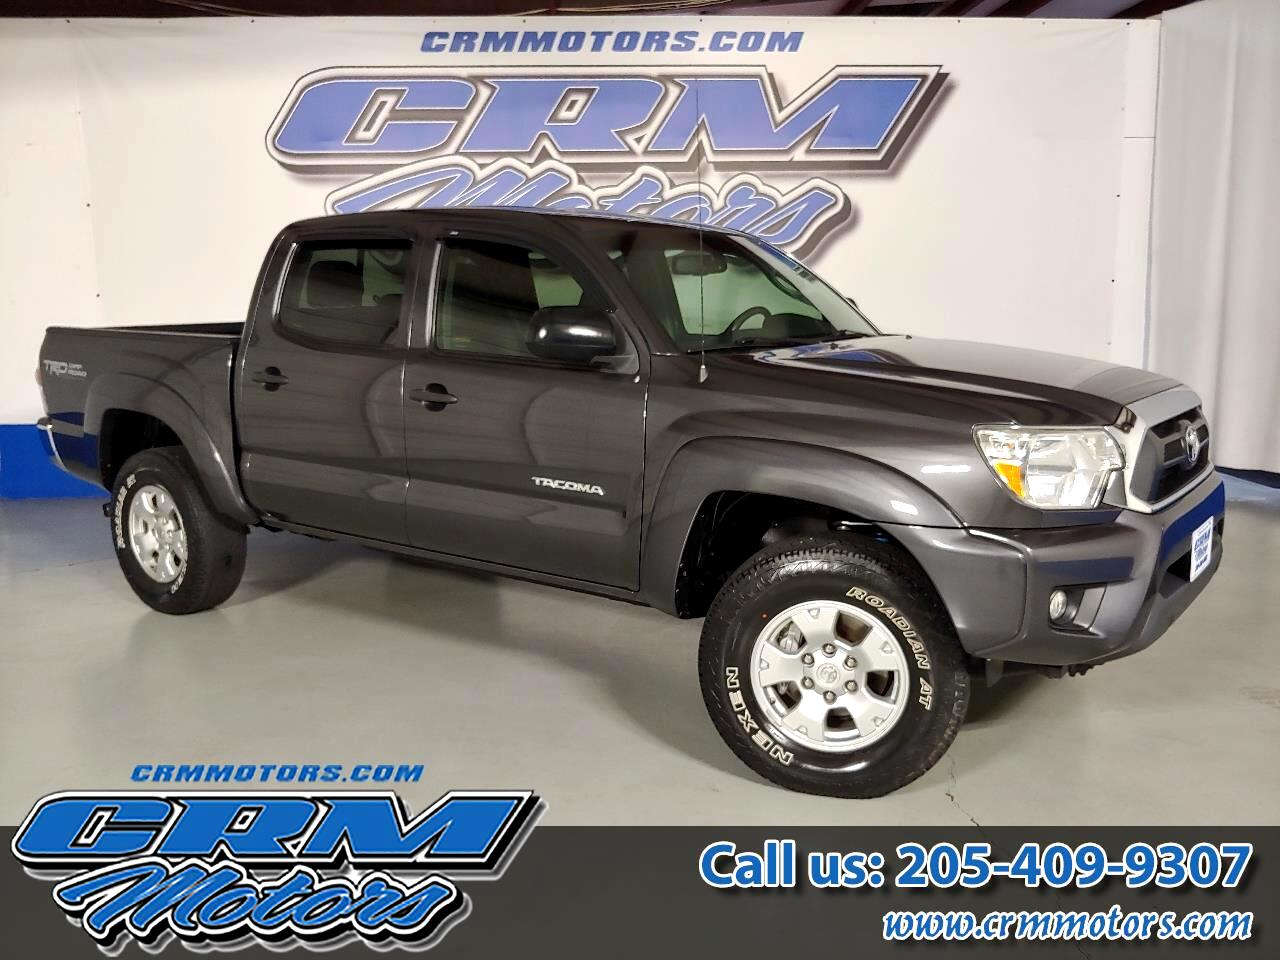 2013 Toyota Tacoma 2WD DOUBLE CAB 2WD, BRAND NEW!